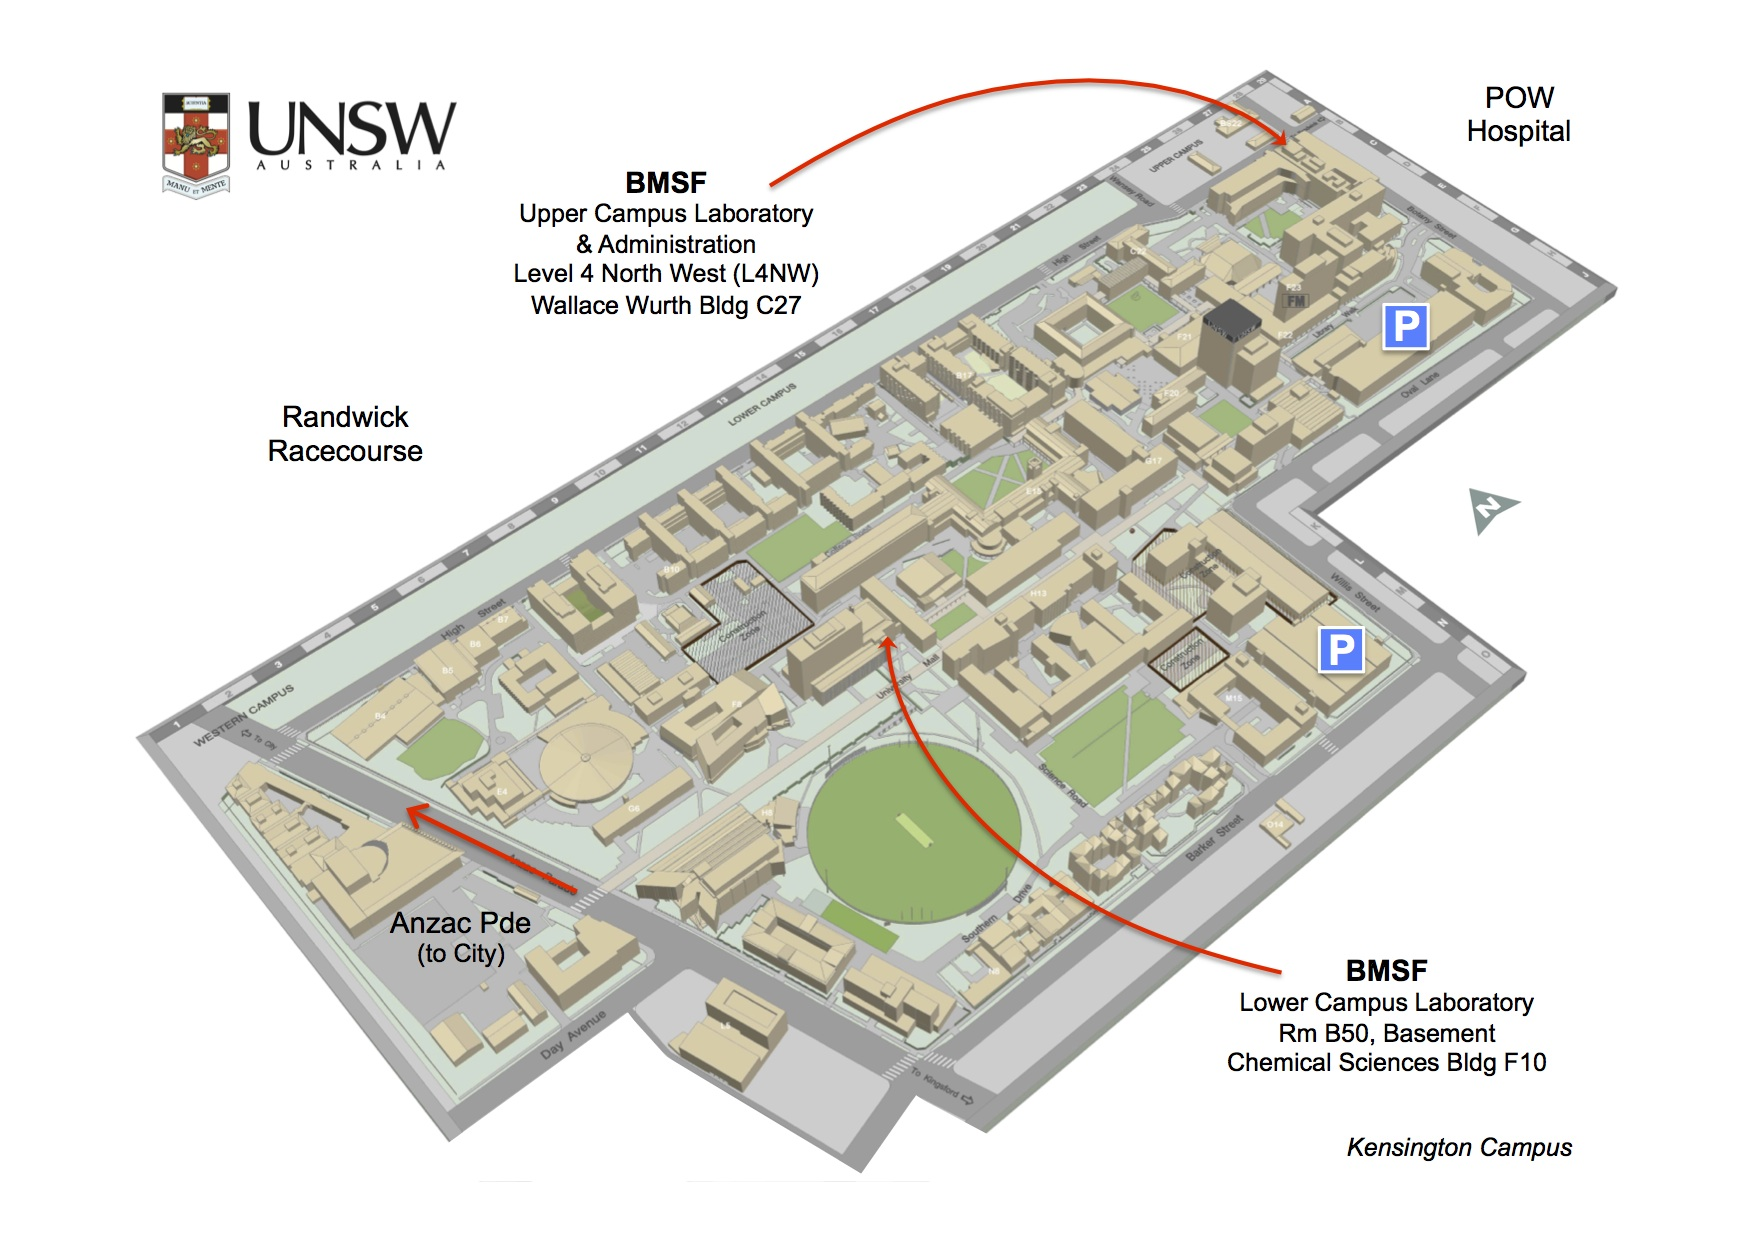 map of unsw campus Bmsf Location Map Unsw Mark Wainwright Analytical Centre map of unsw campus